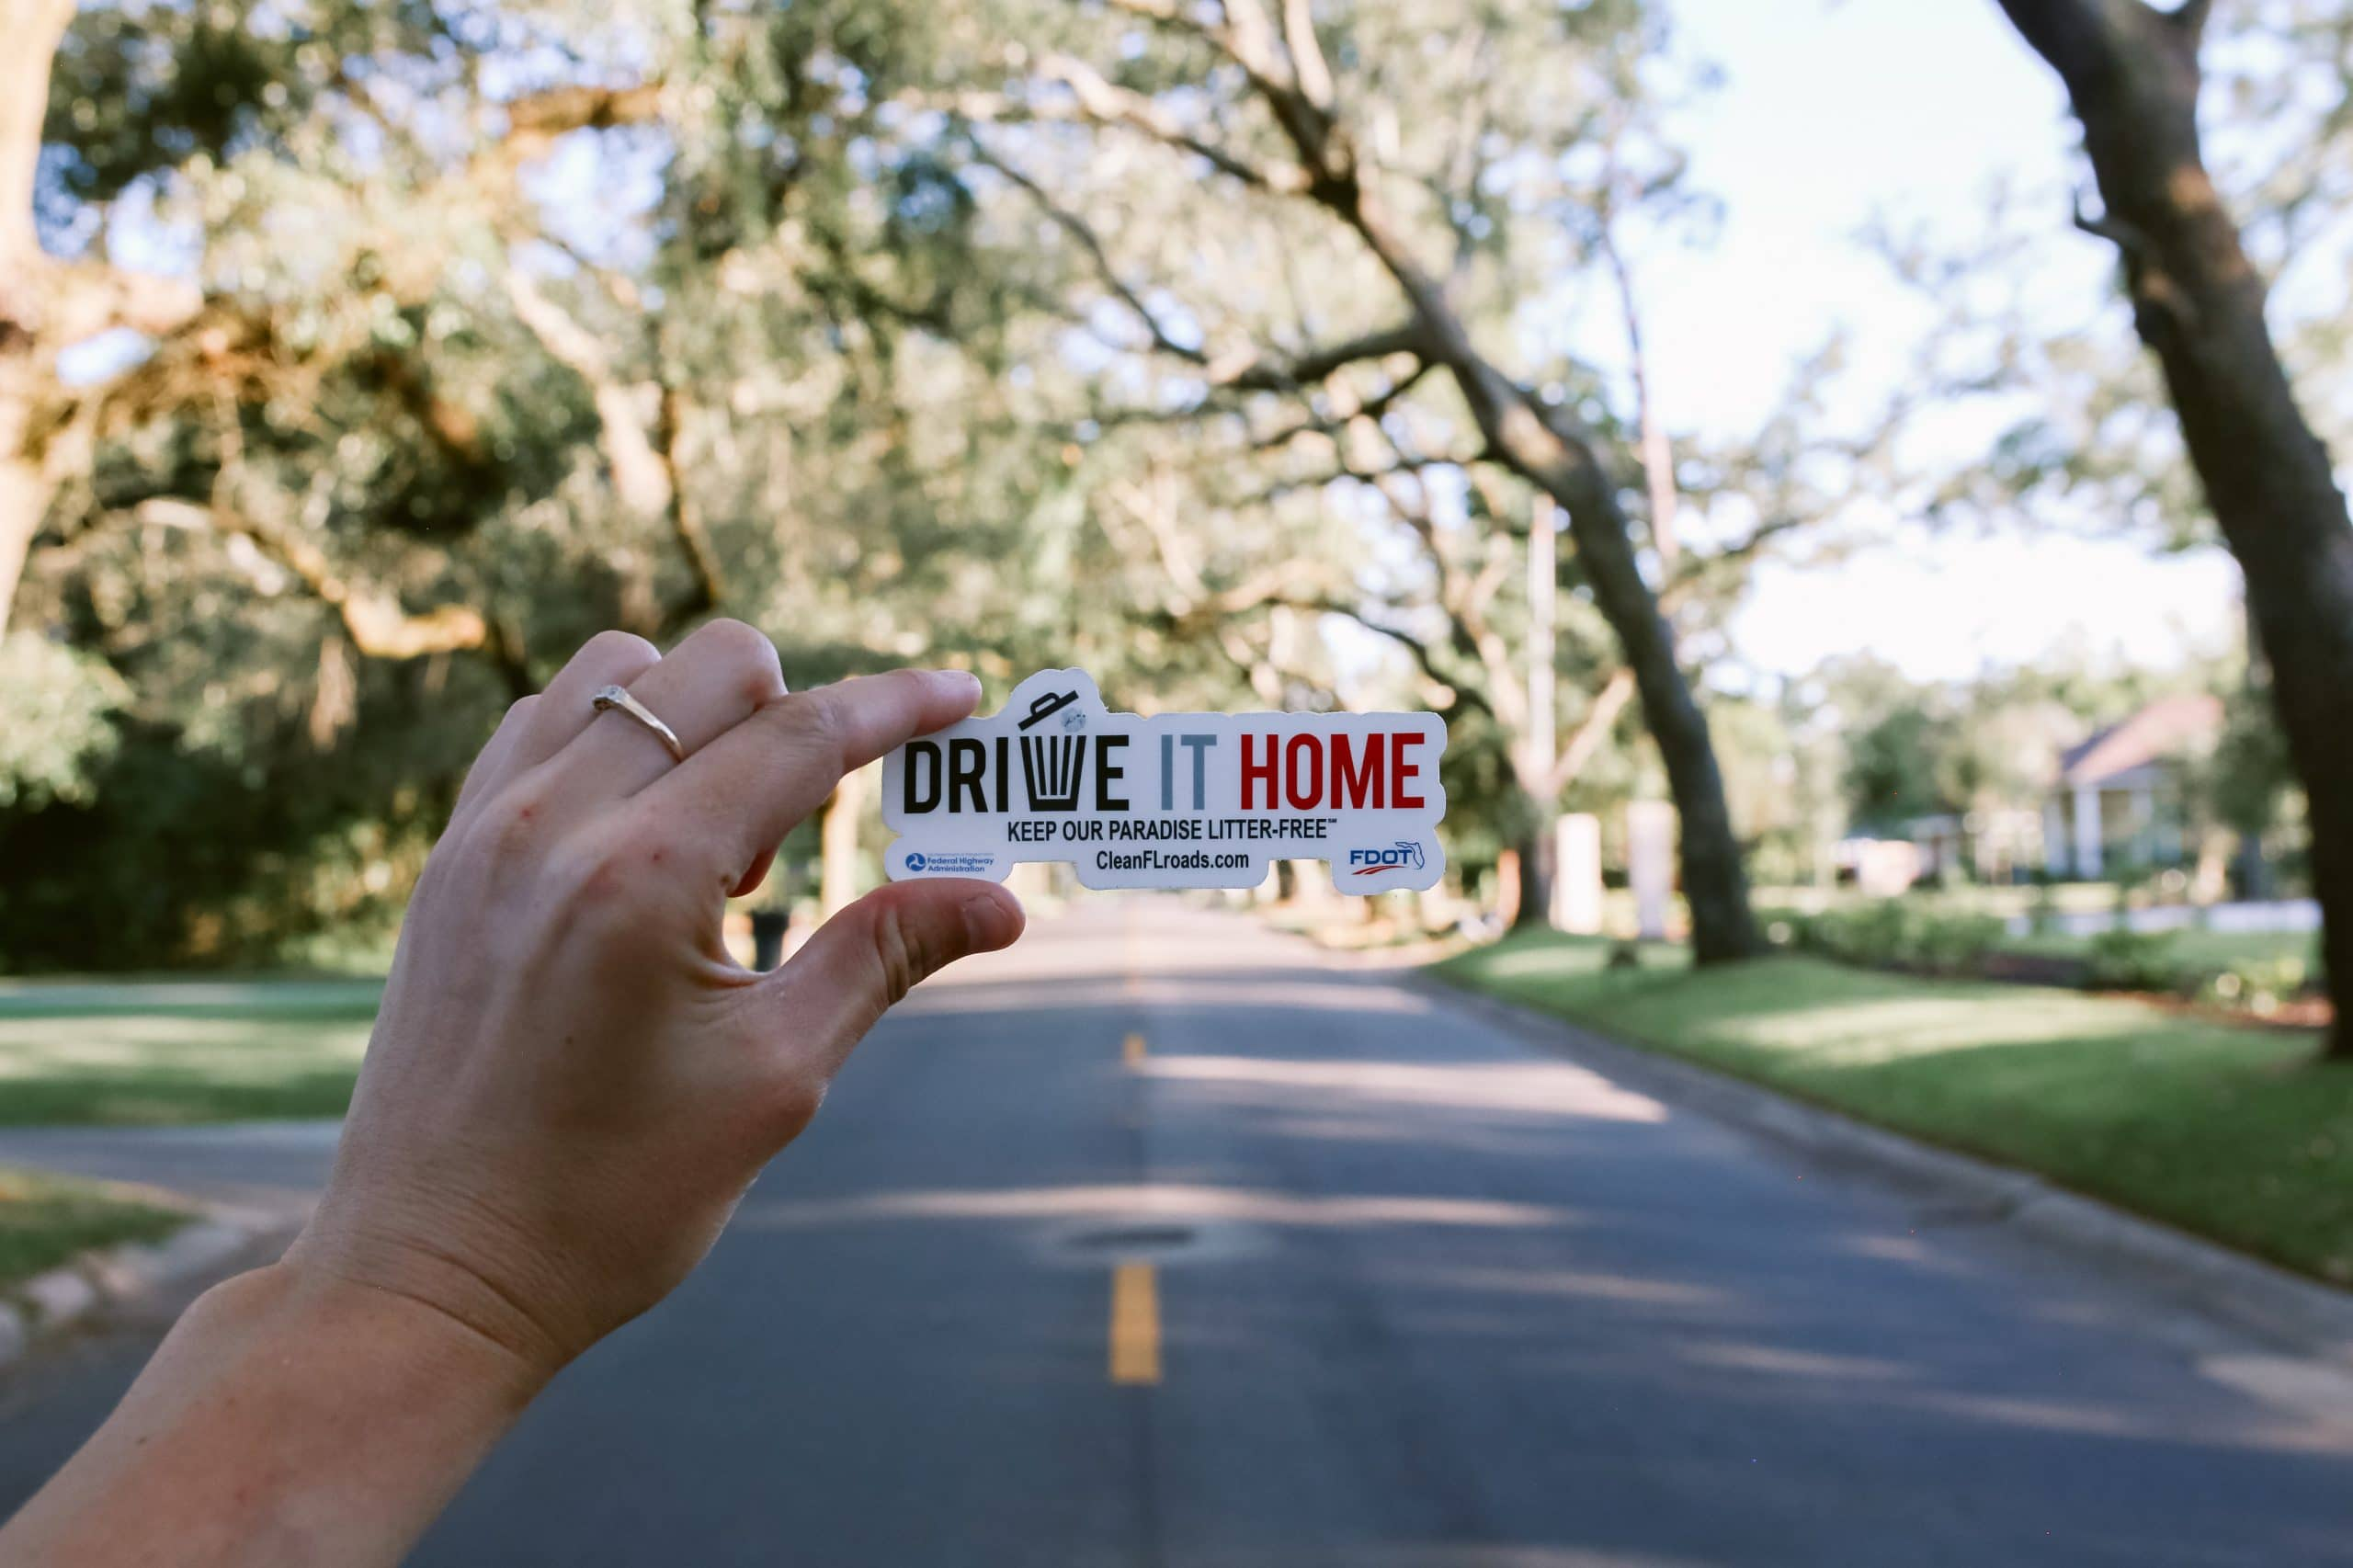 FDOT Drive It Home